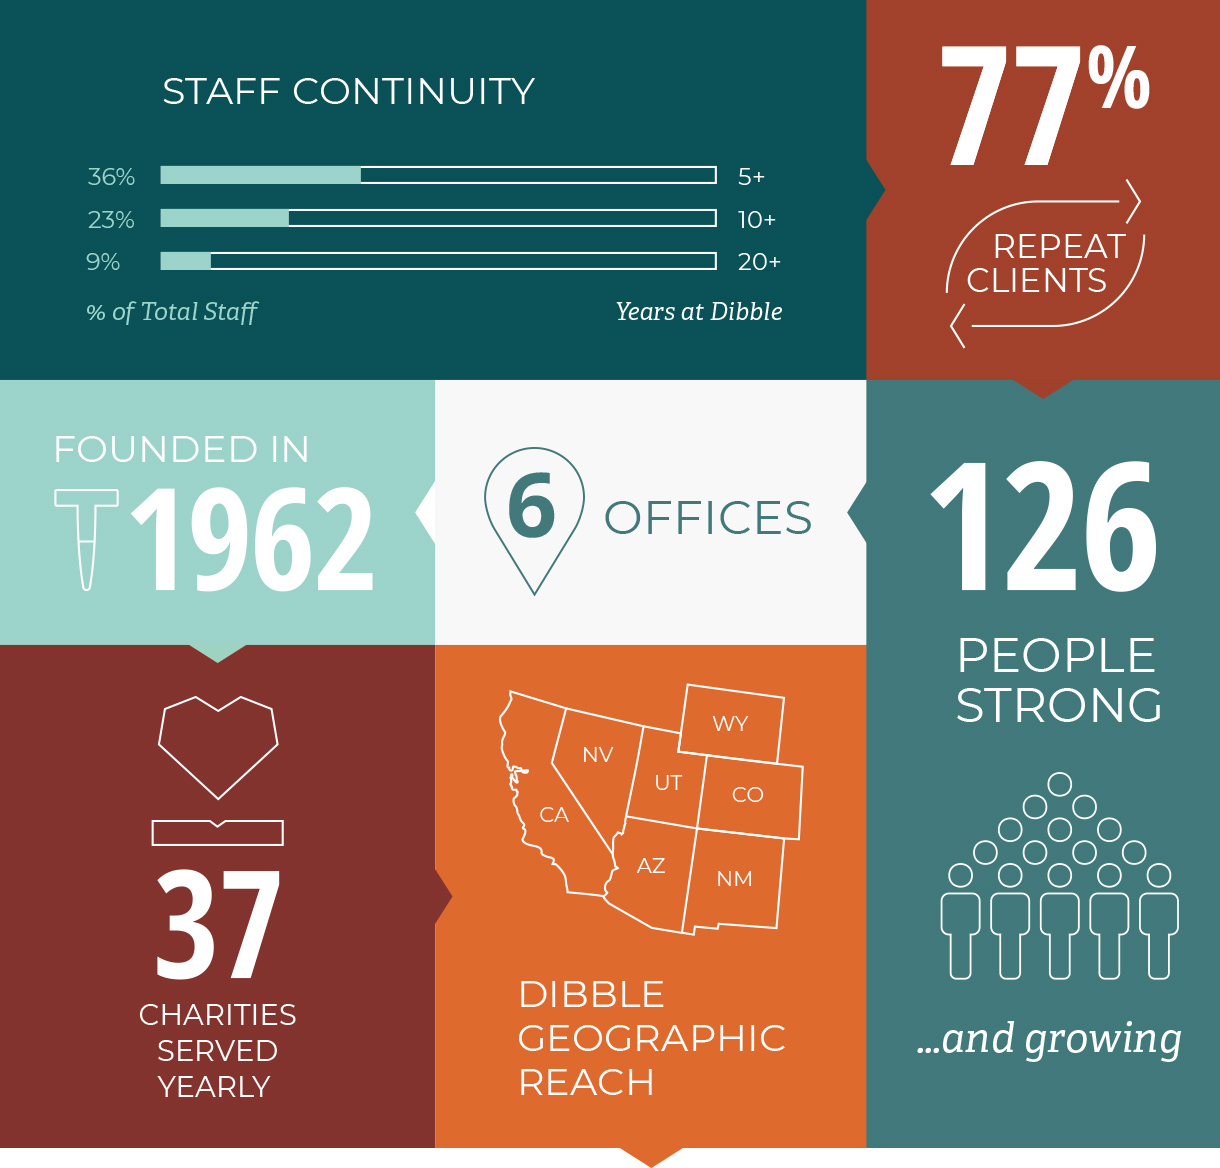 77% Repeat Clients, 37 Charities Served Yearly, Founded 1962, 6 Offices, 126 People Strong, Geographic Reach: CA, NV, AZ, UT, NM, CO, WY